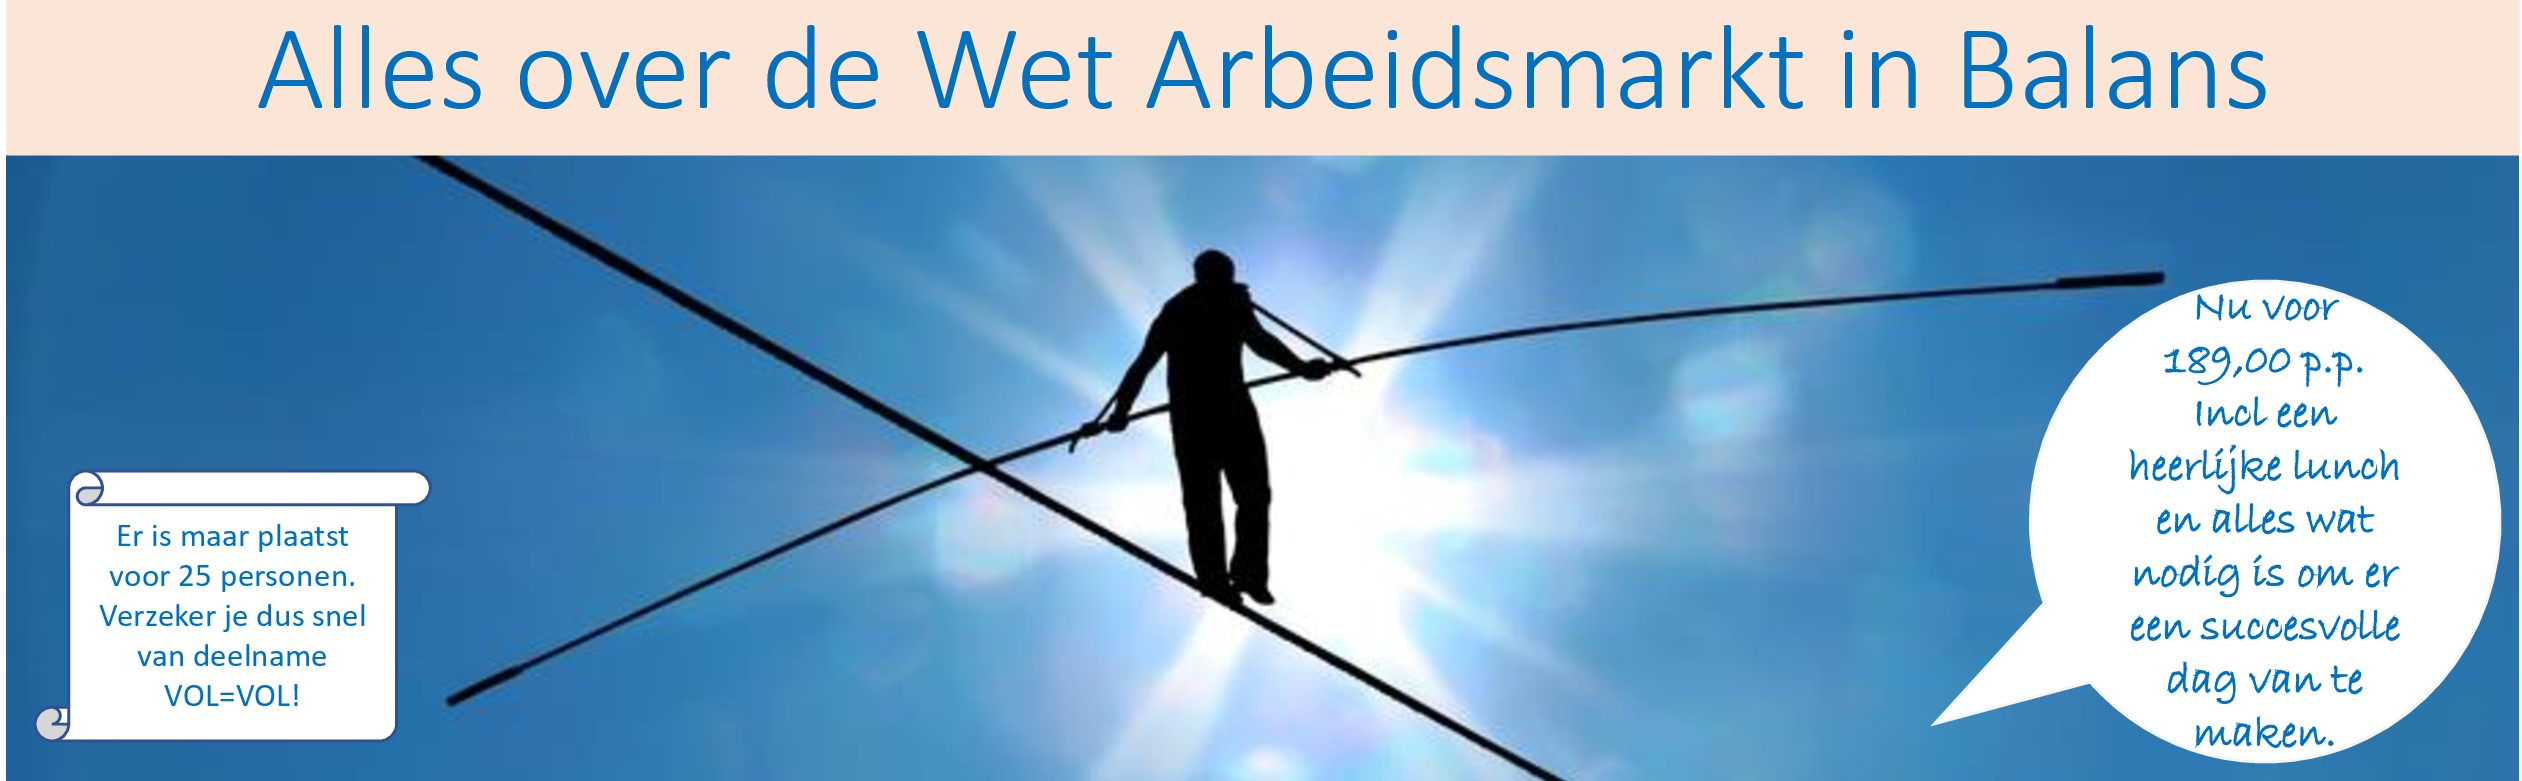 Alles over de Wet Arbeidsmarkt in Balans